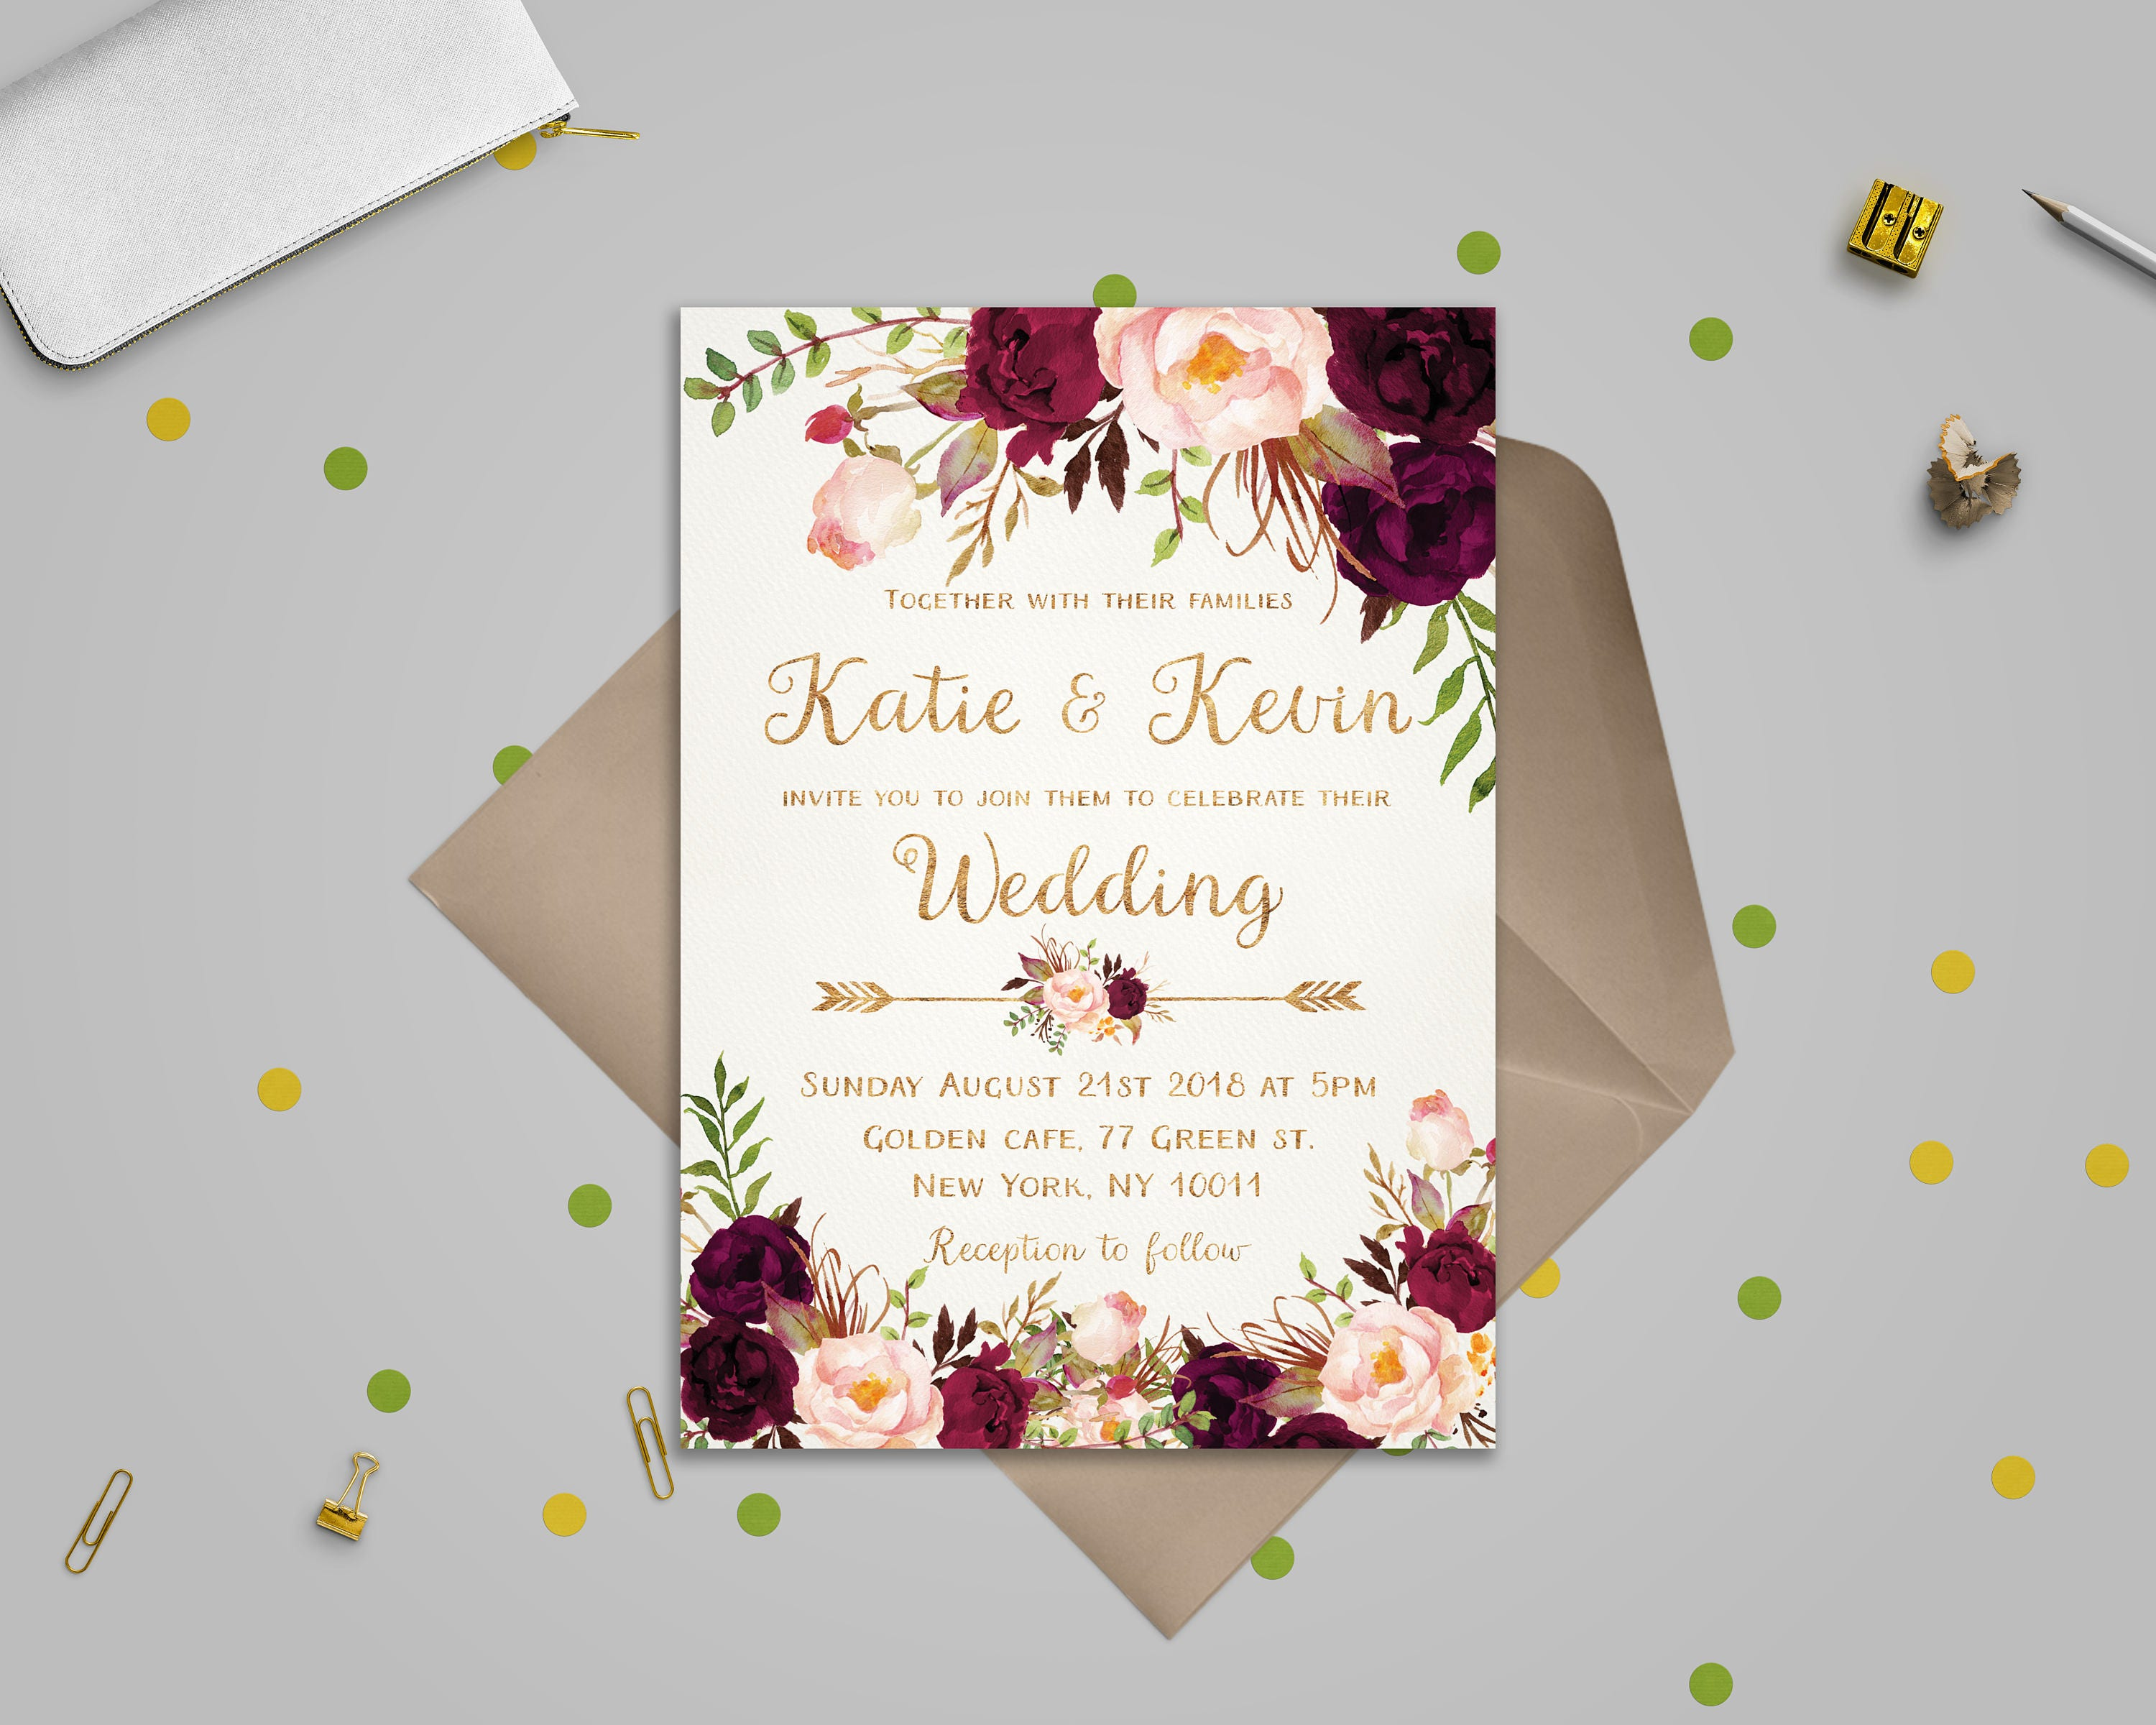 Wedding Invitation Card Sample: Floral Wedding Invitation Template Wedding Invitation